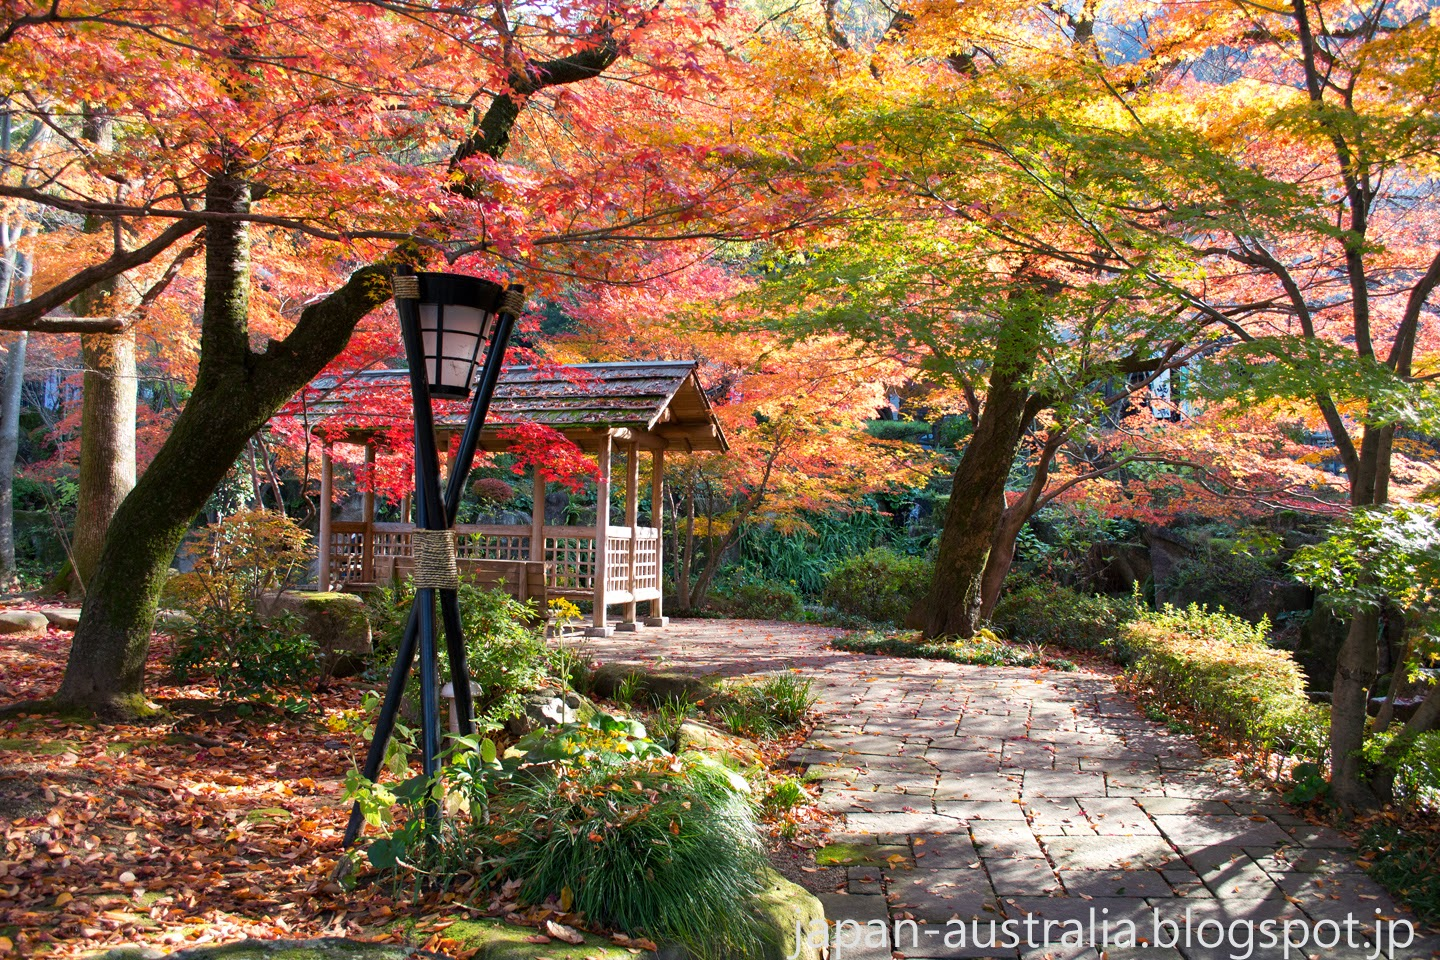 Autumn Colours at Gifu Park